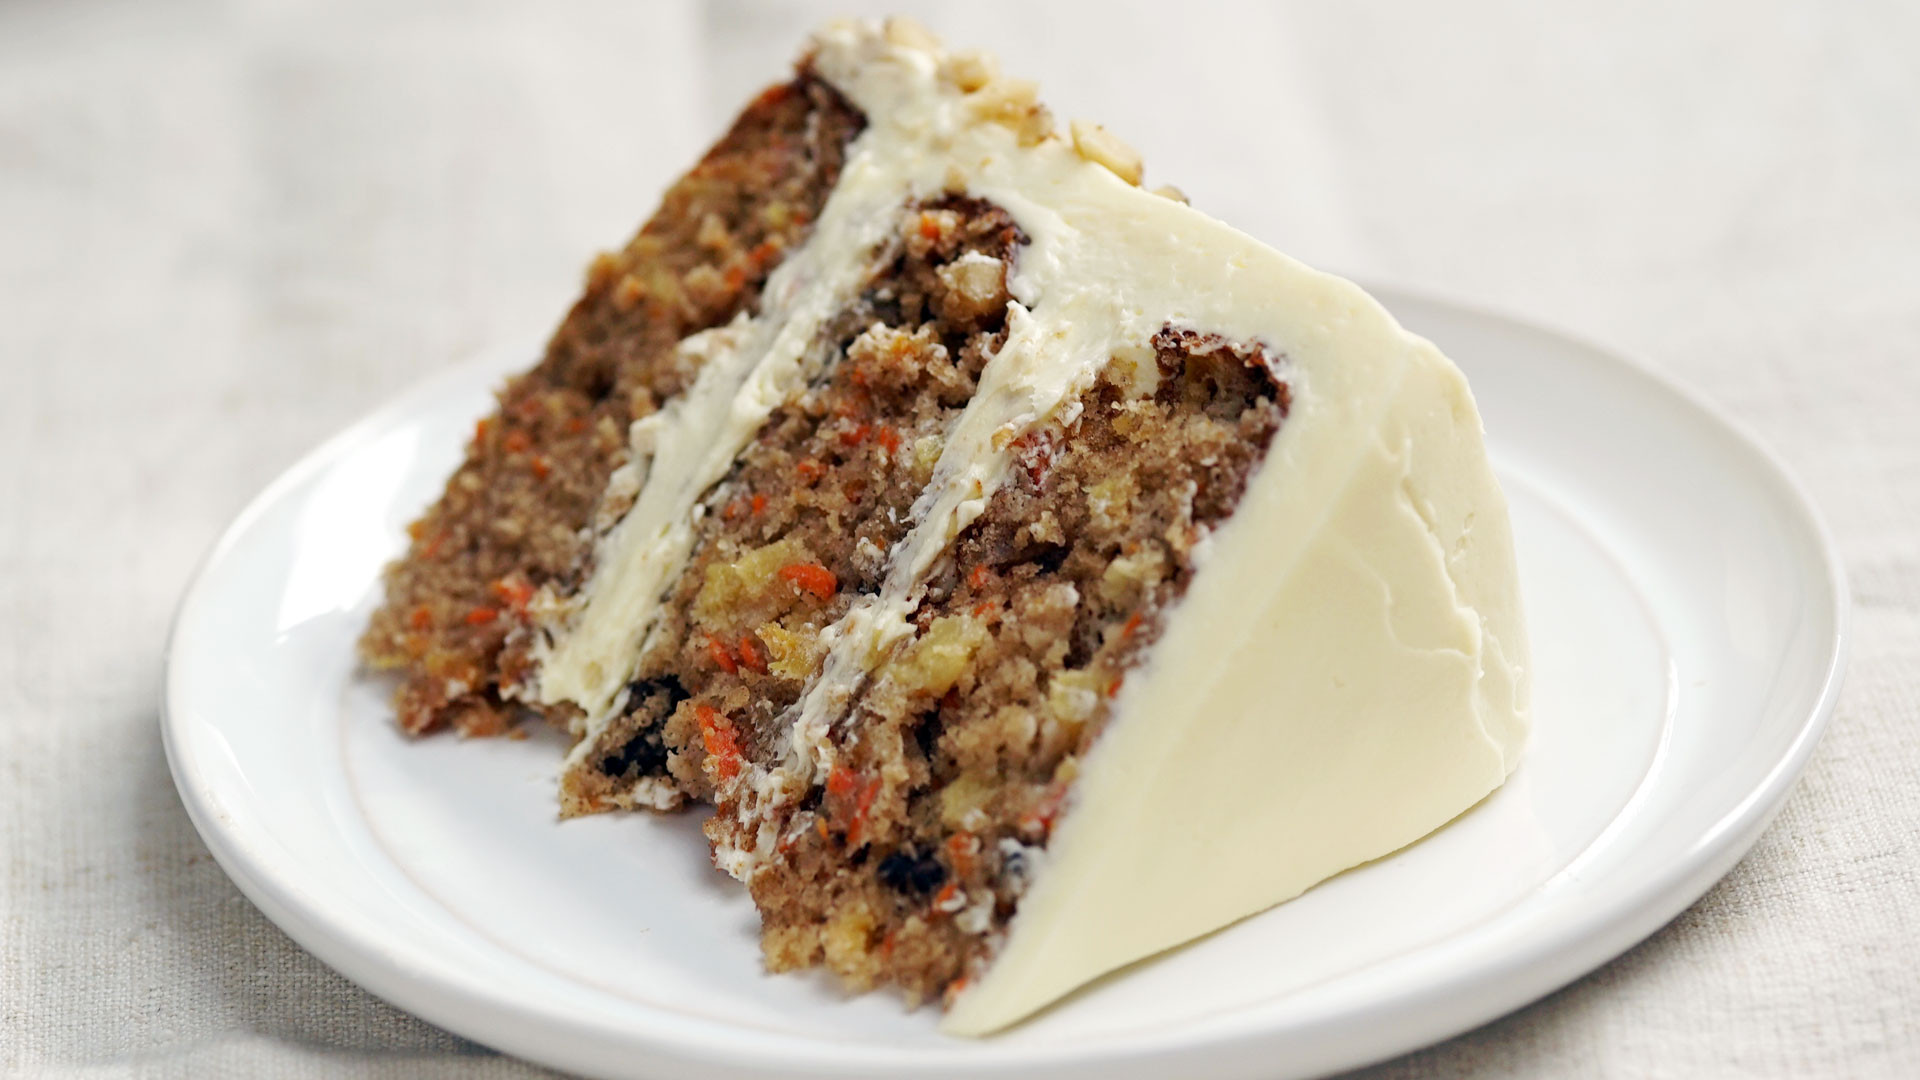 Healthy Carrot Cake Recipe With Applesauce  healthy carrot cake recipe with applesauce